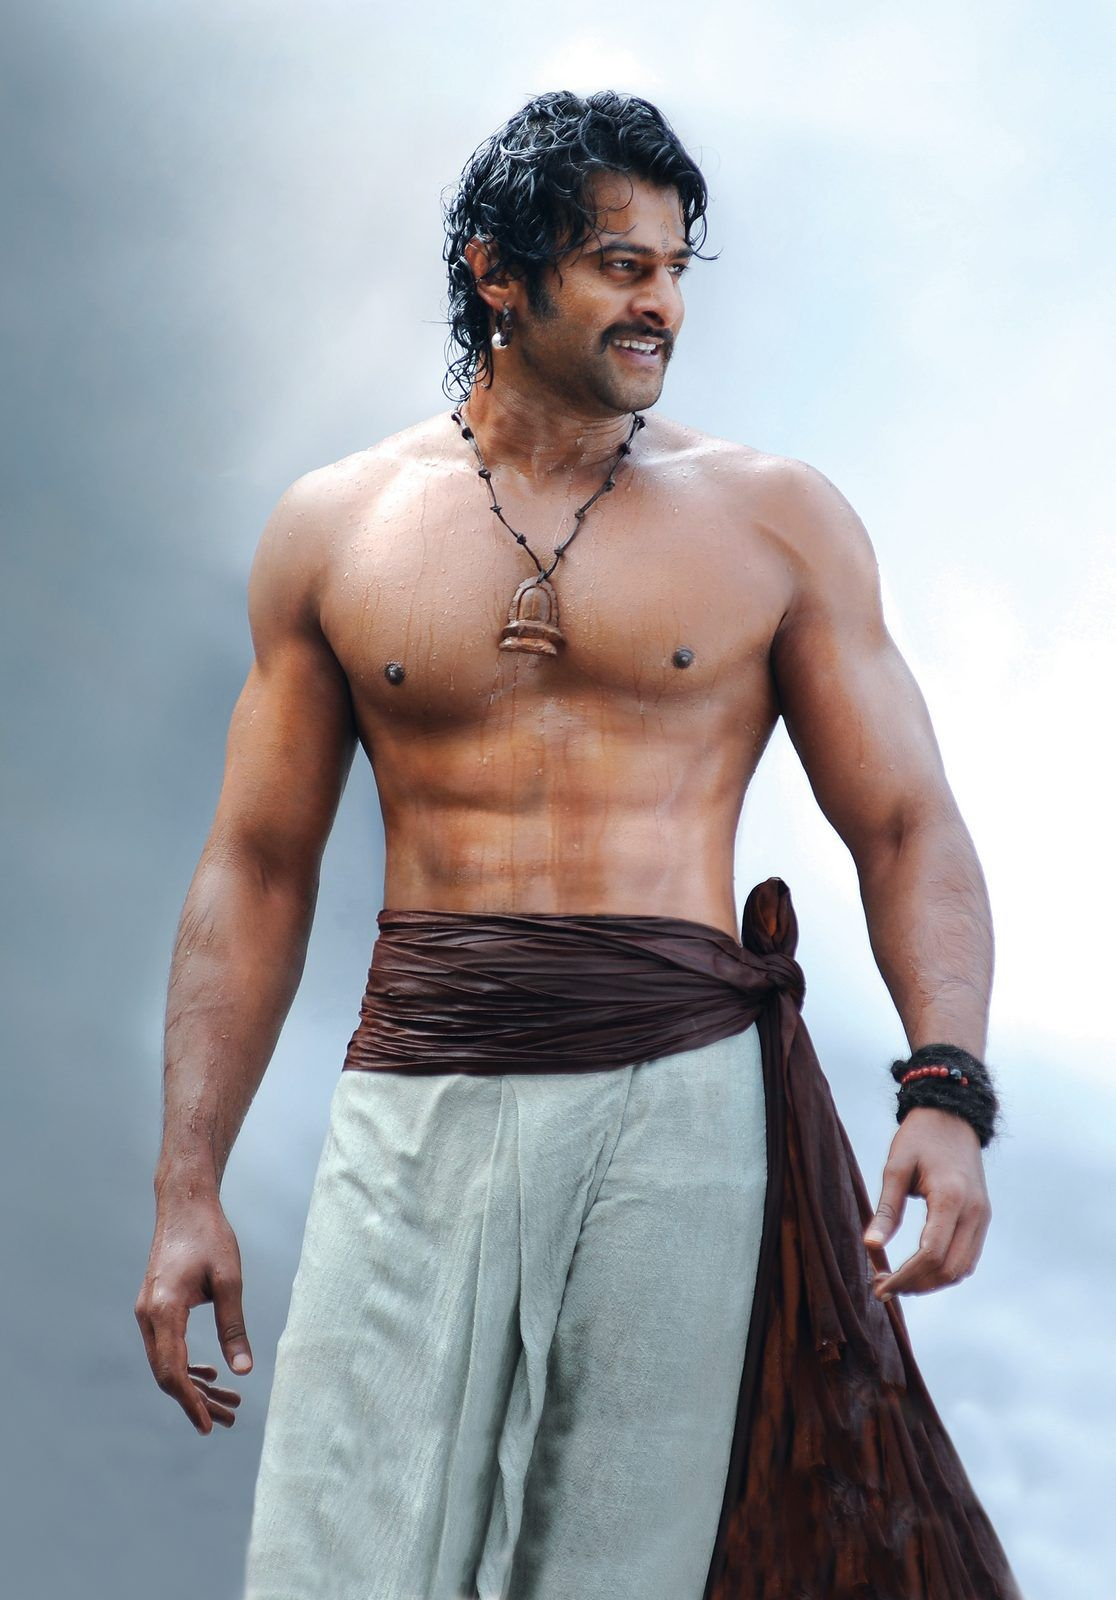 bahubali wallpapers | bahubali movie wallpapers | download | men